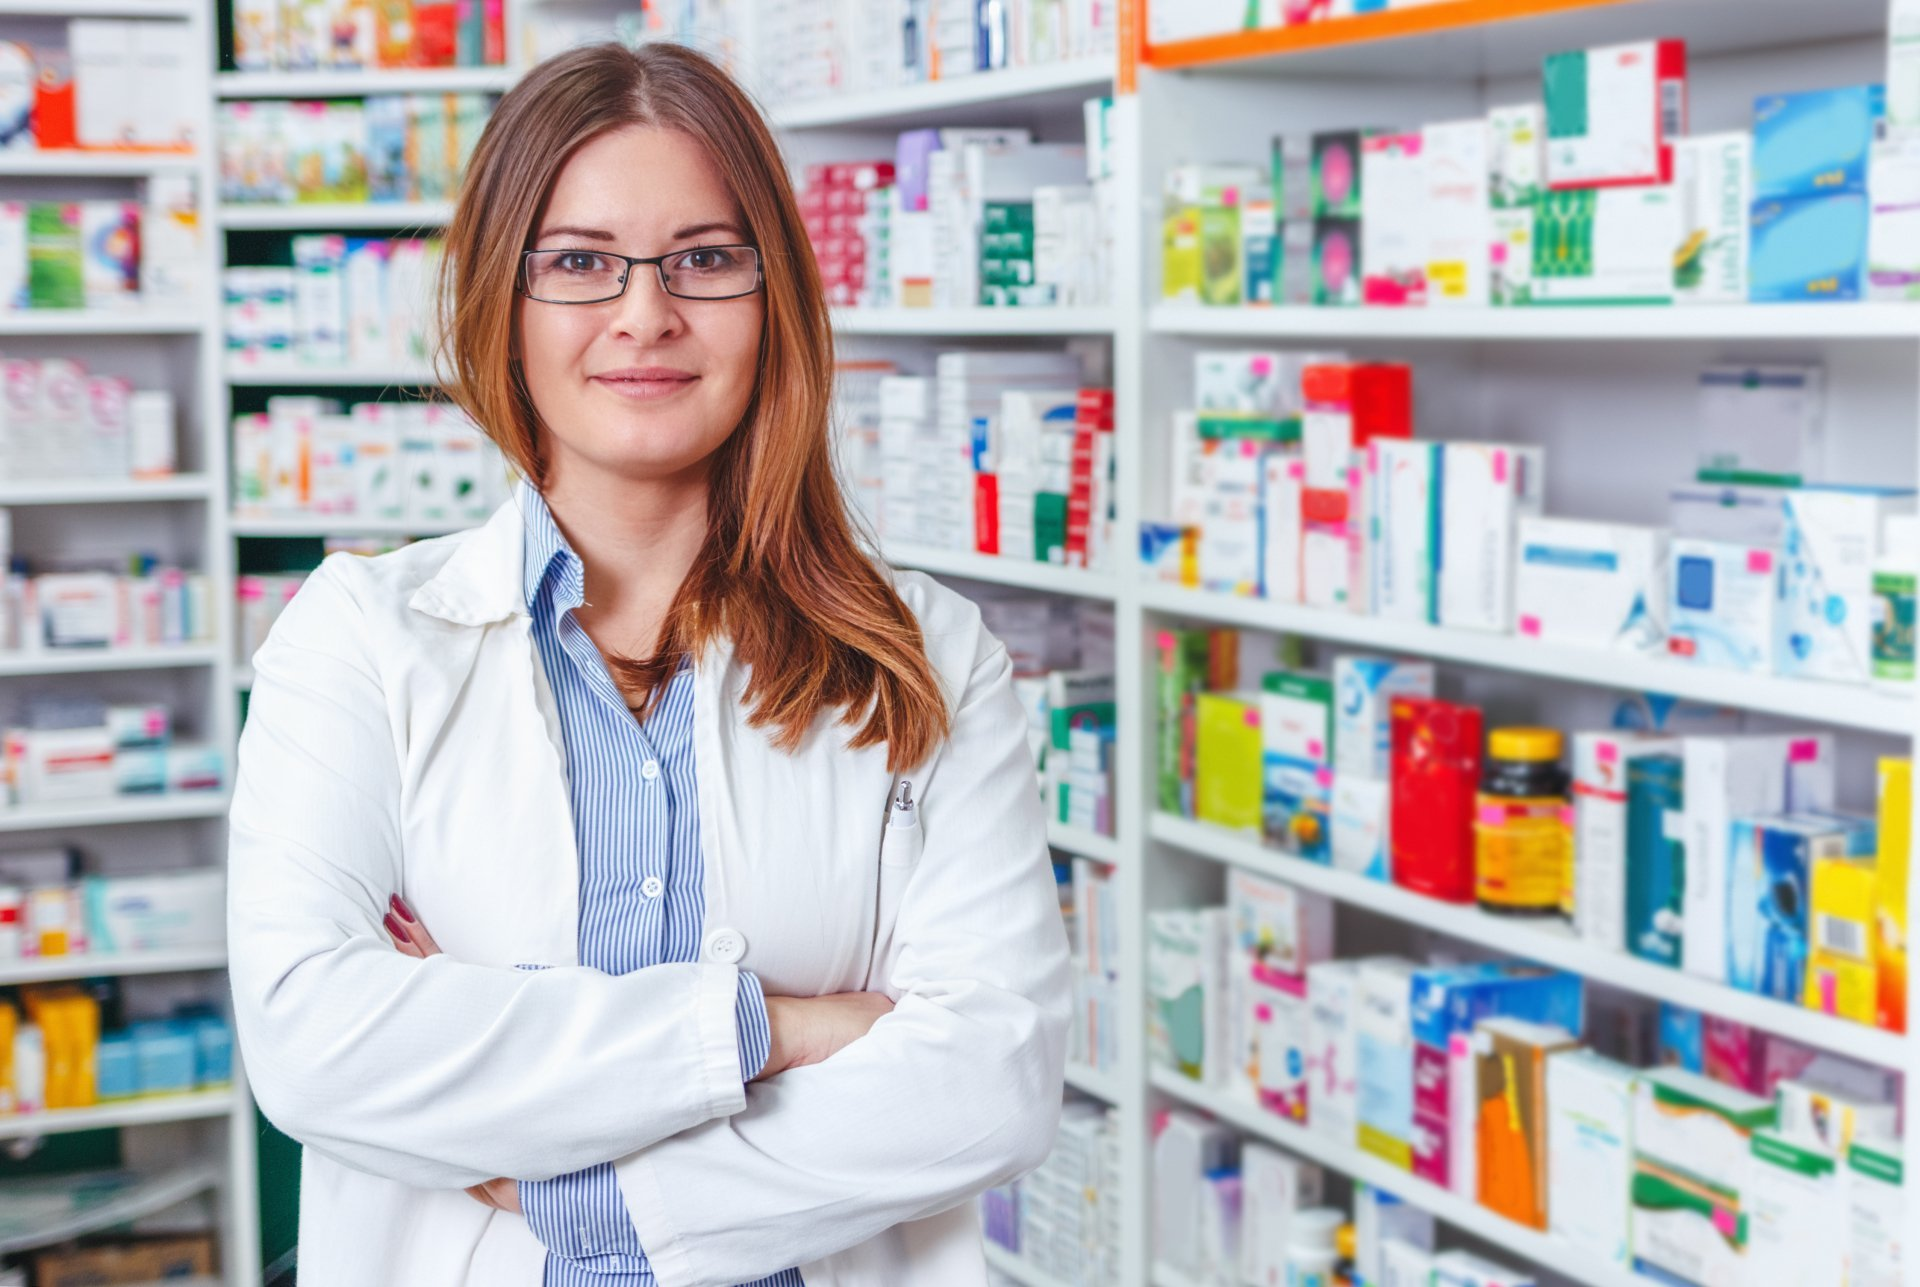 Order directly from your pharmacy